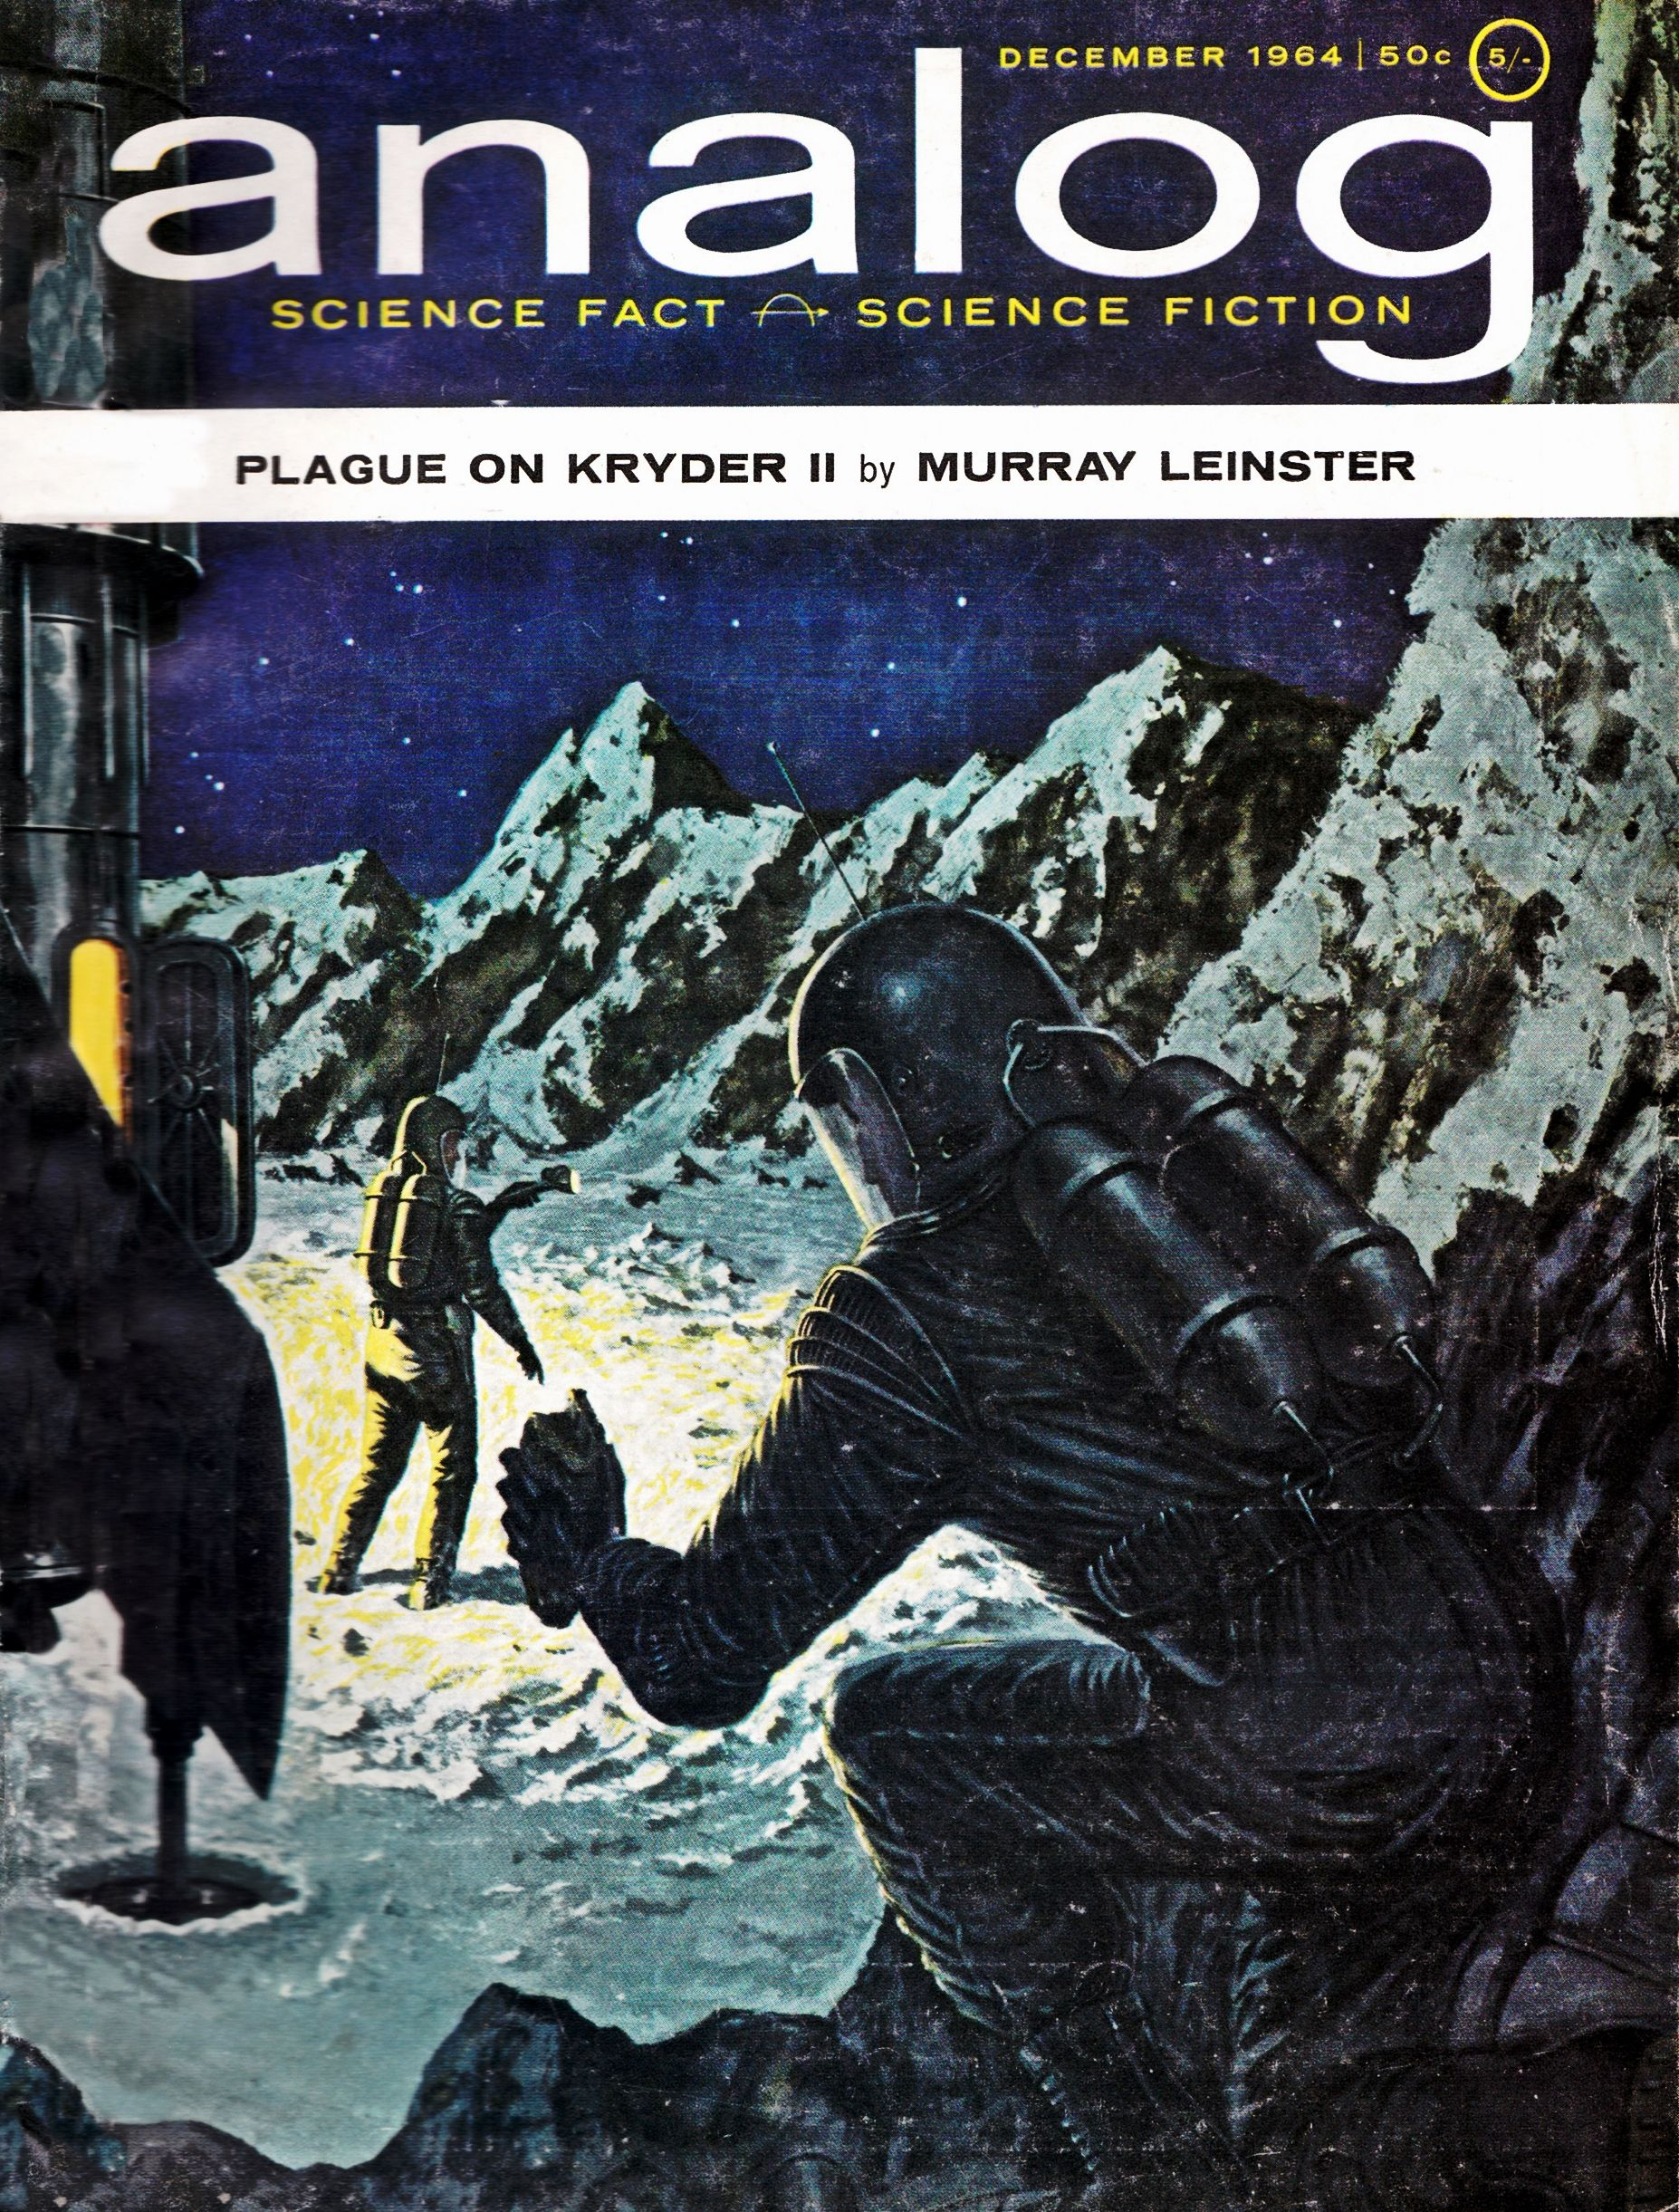 Analog science fact and fiction december 1964 cover art by